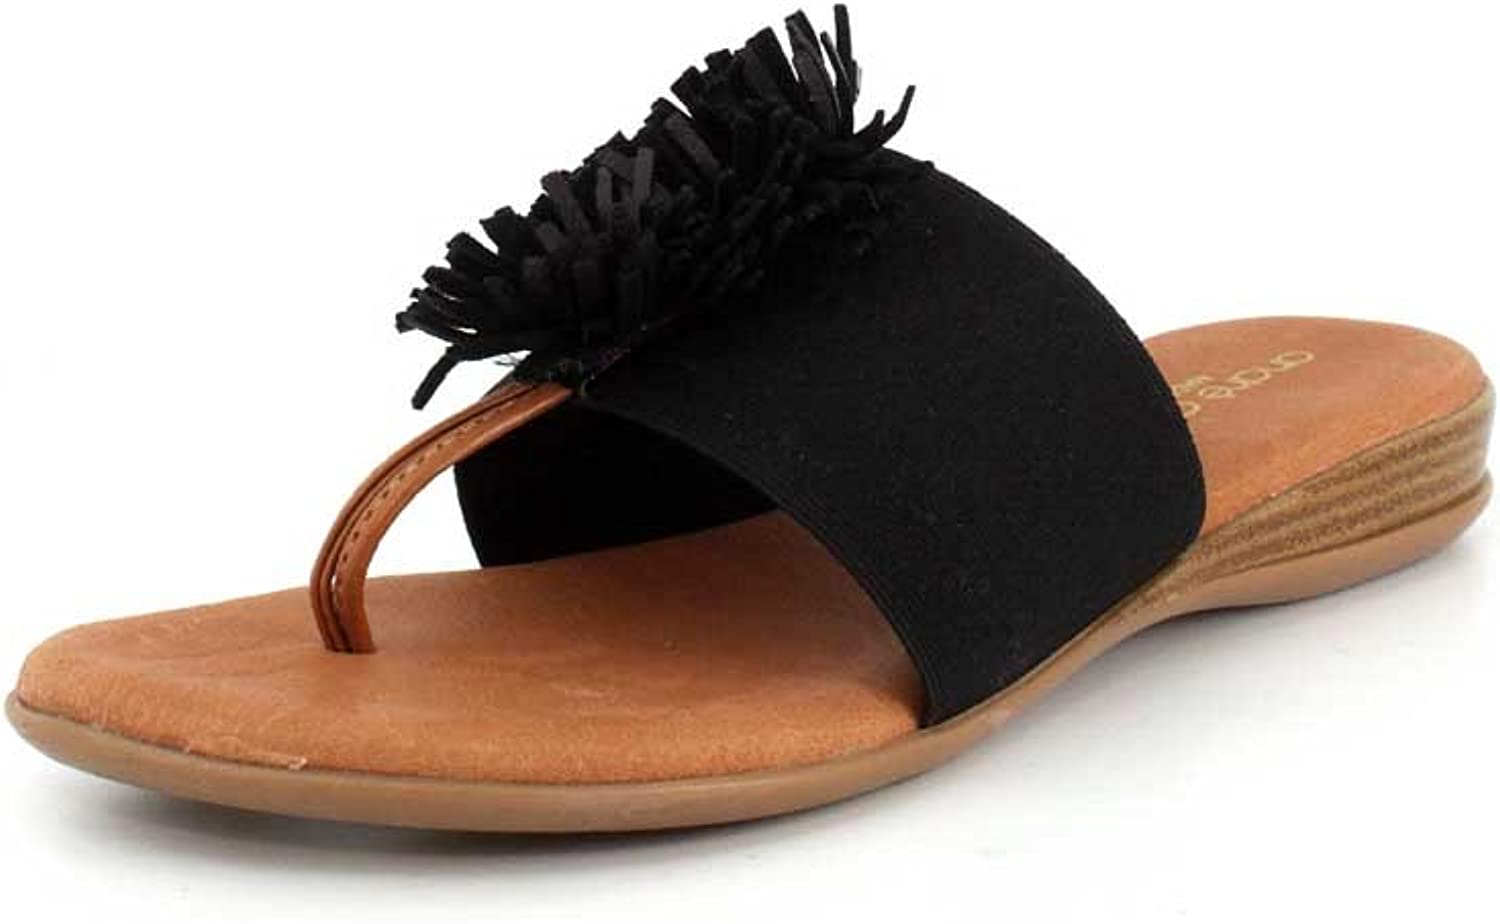 Andre Assous Women's Novalee in Black Stretch Elastic Suede Leather Fringe - Size 11 M